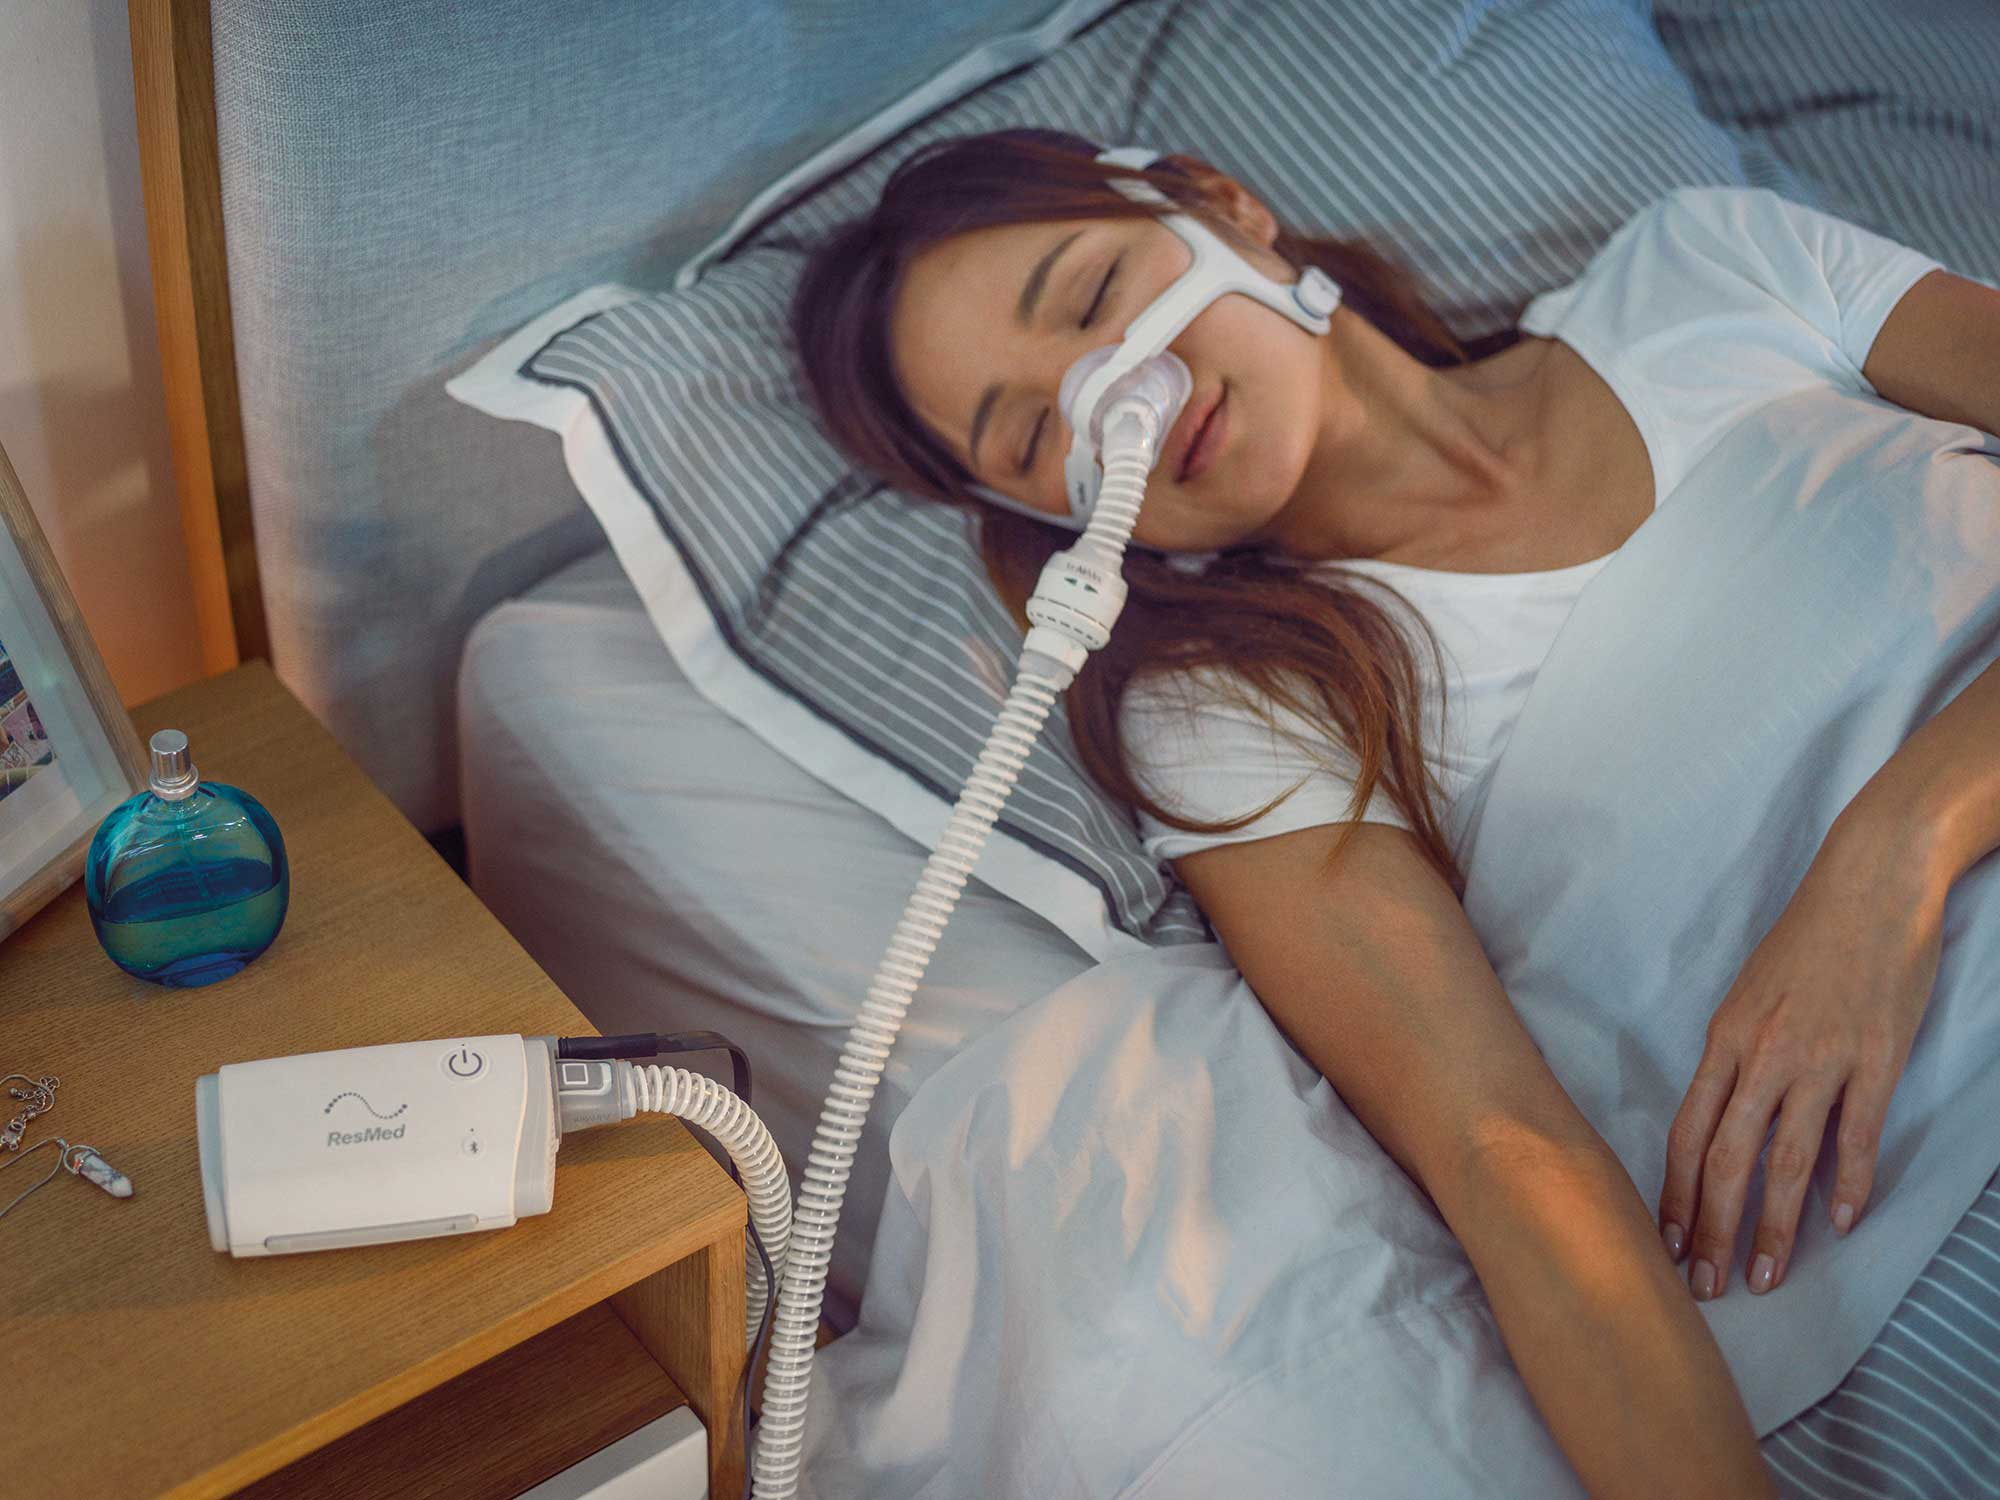 Your Guide to the ResMed AirMini Auto CPAP - Liberty Medical